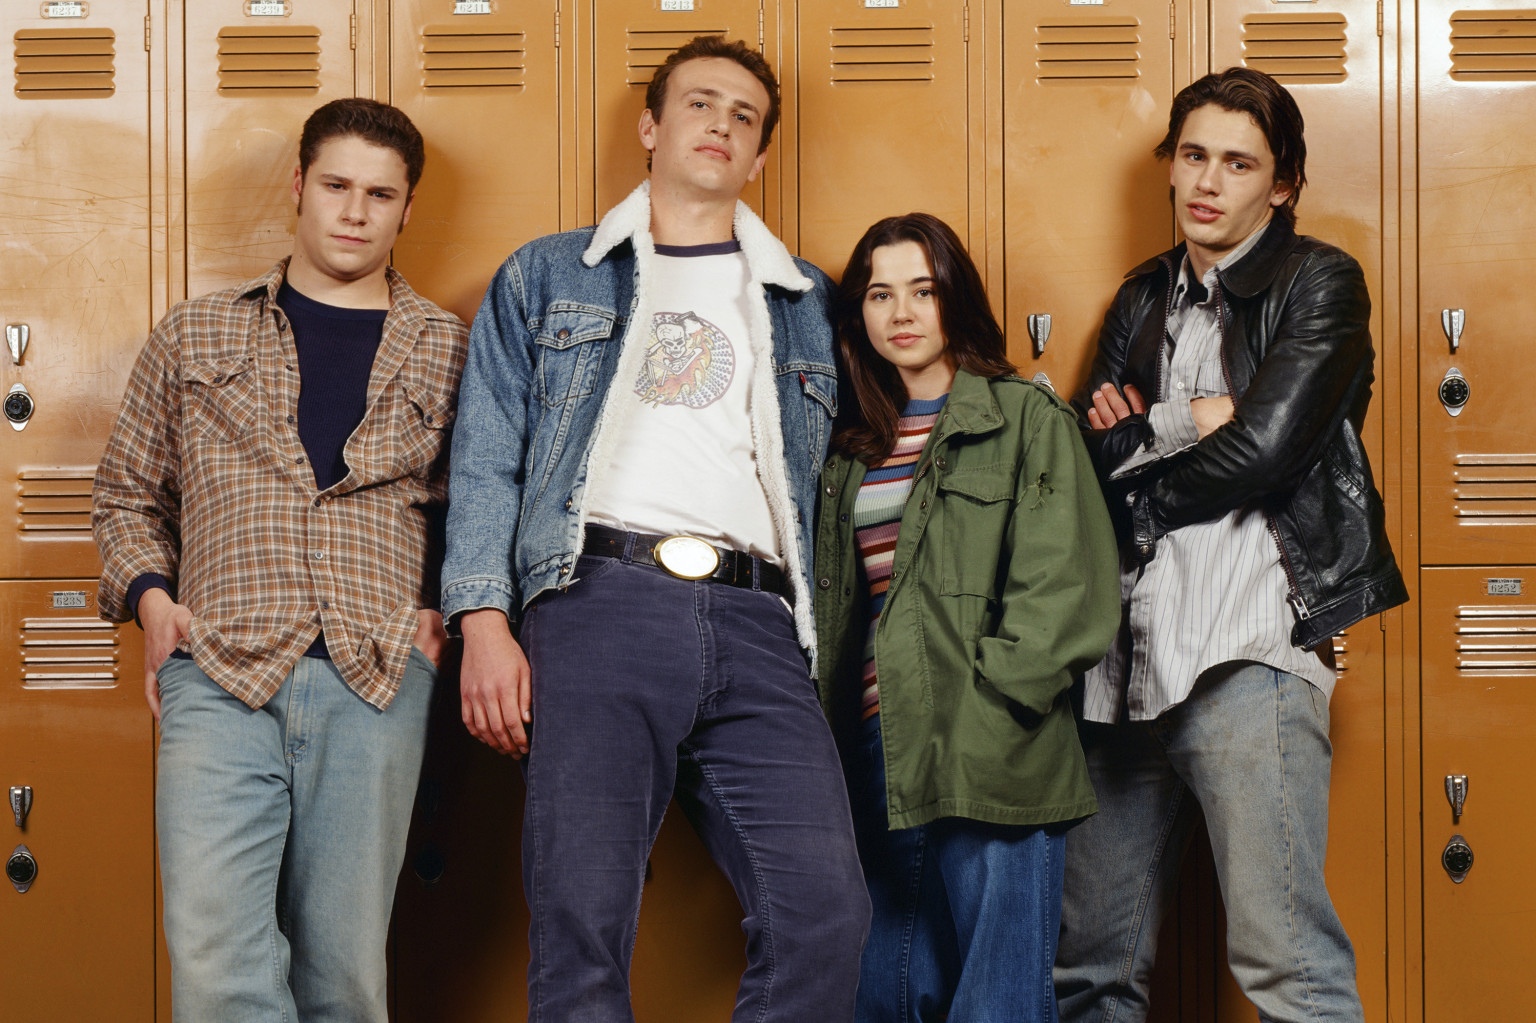 What Lindsay From Freaks And Geeks Would Be Up To Today